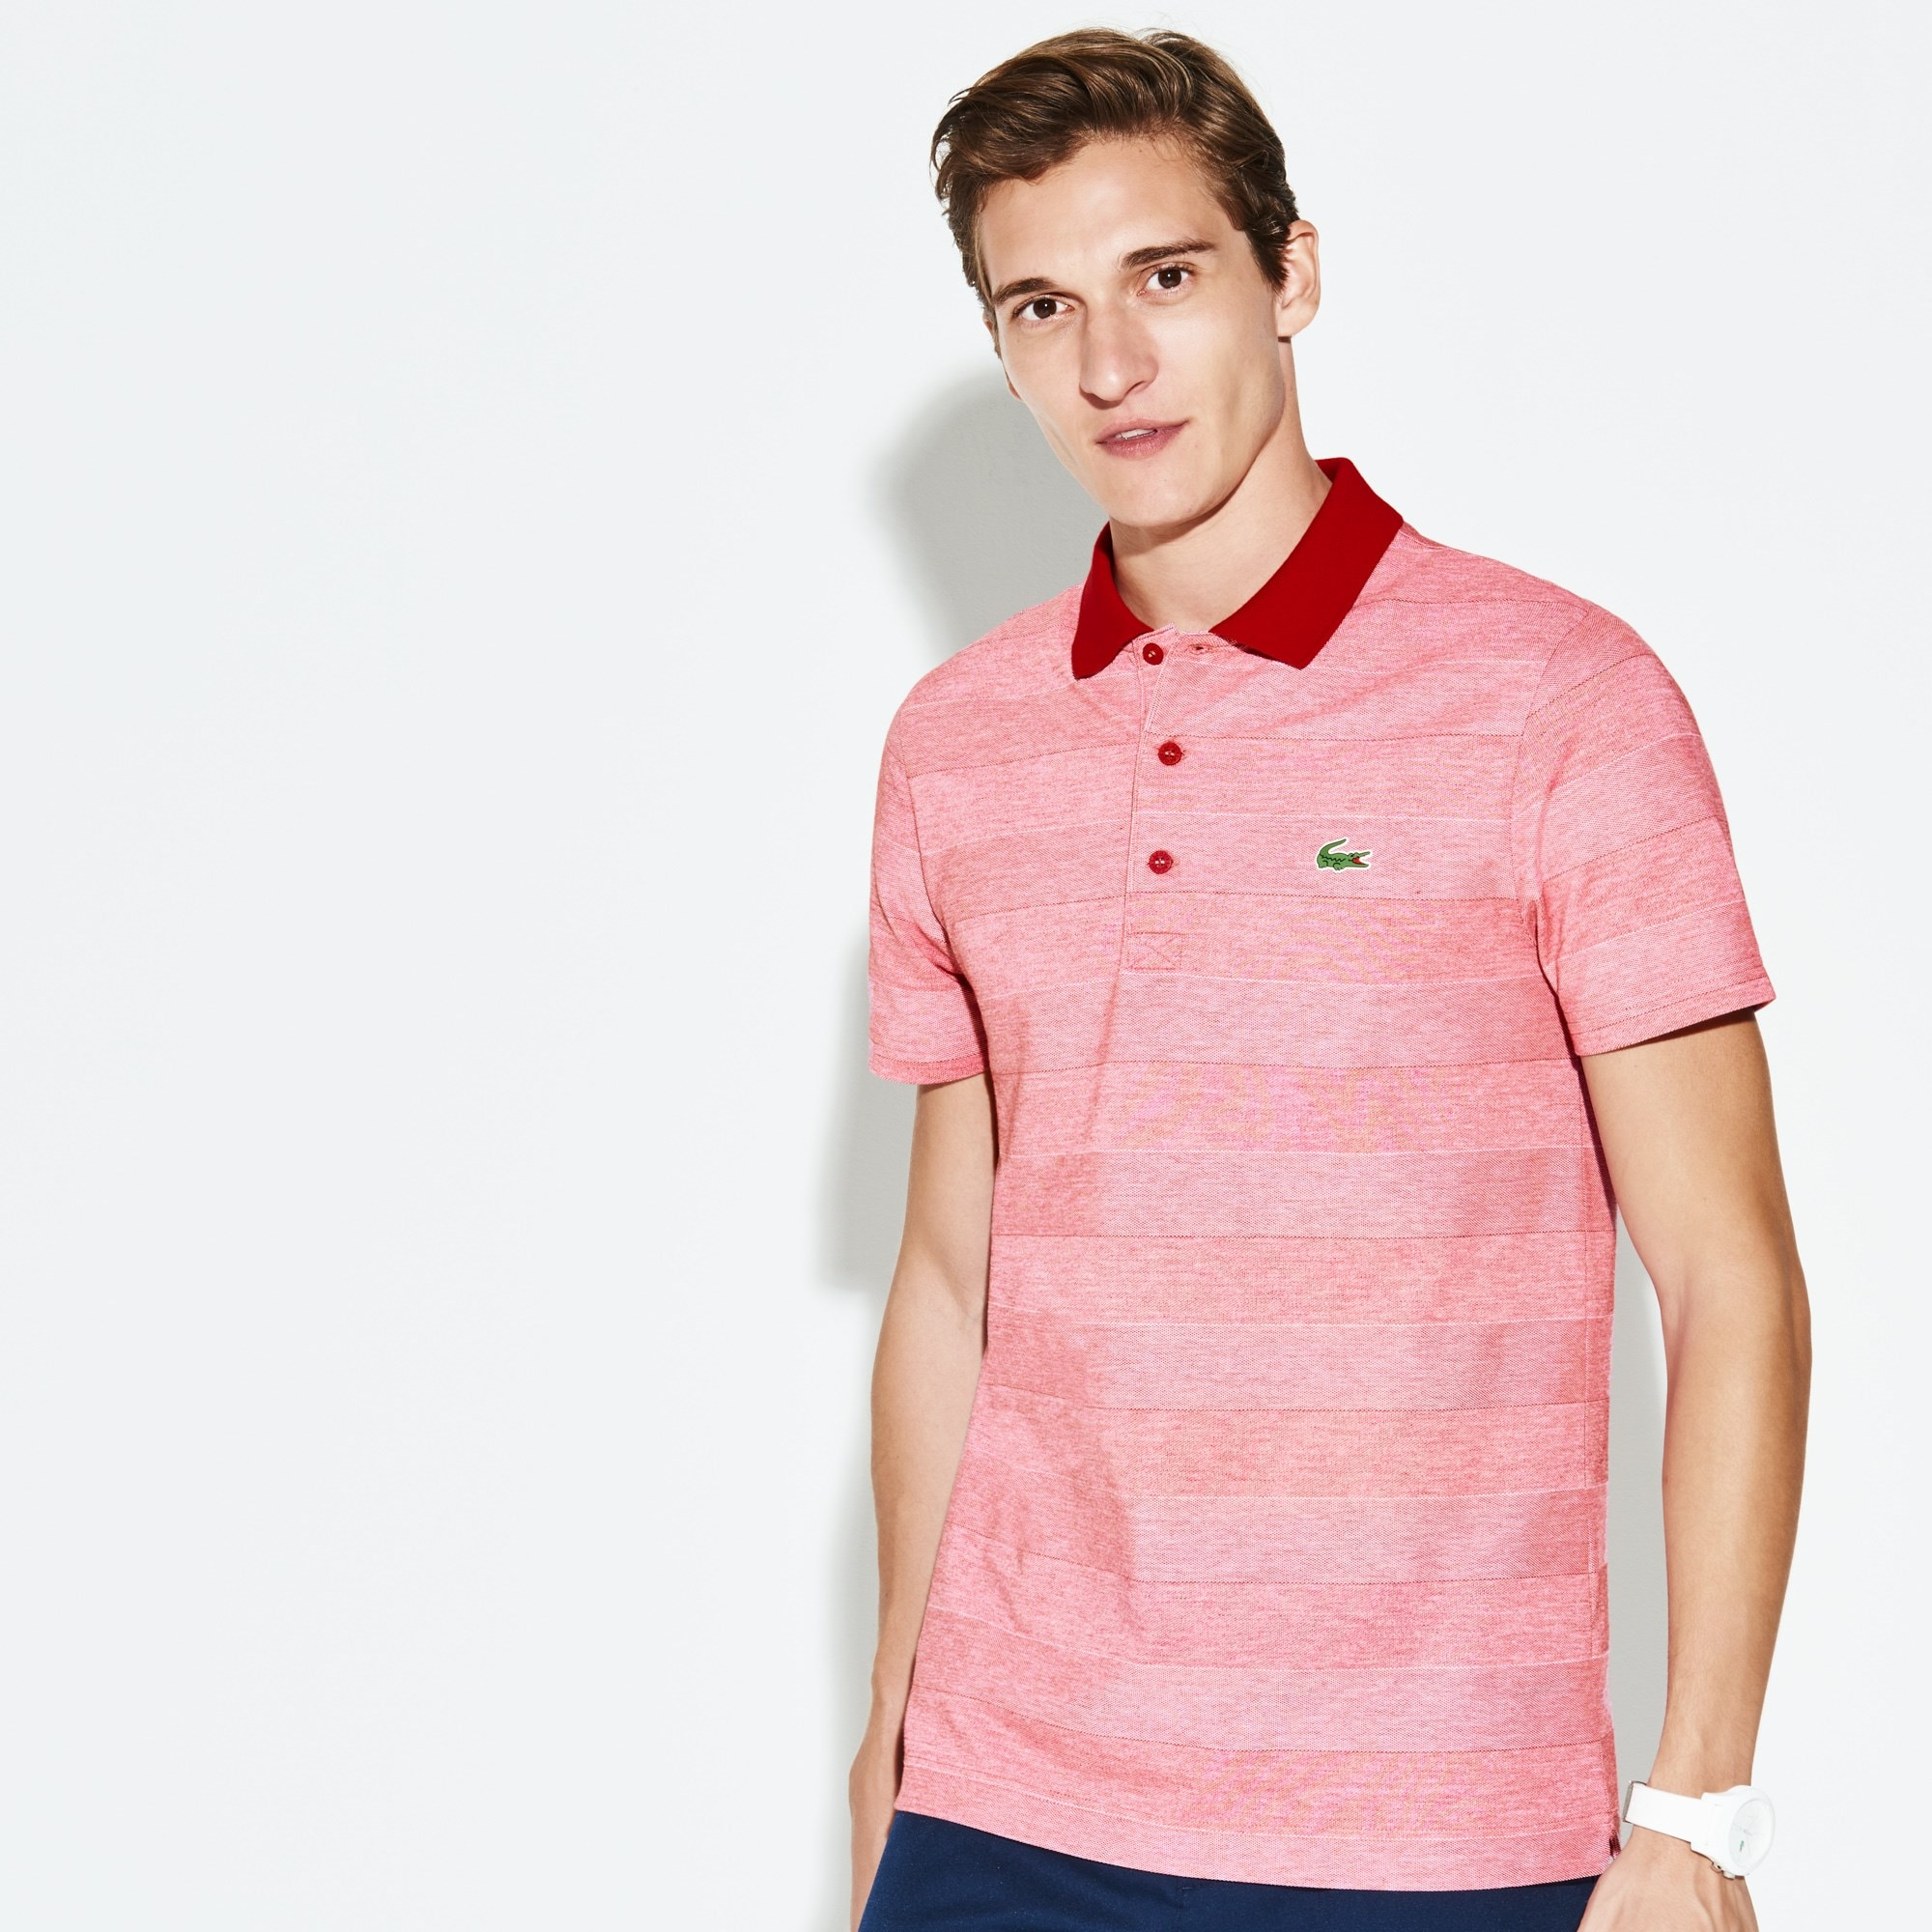 Men's Lacoste SPORT Technical Jersey Golf Polo Shirt